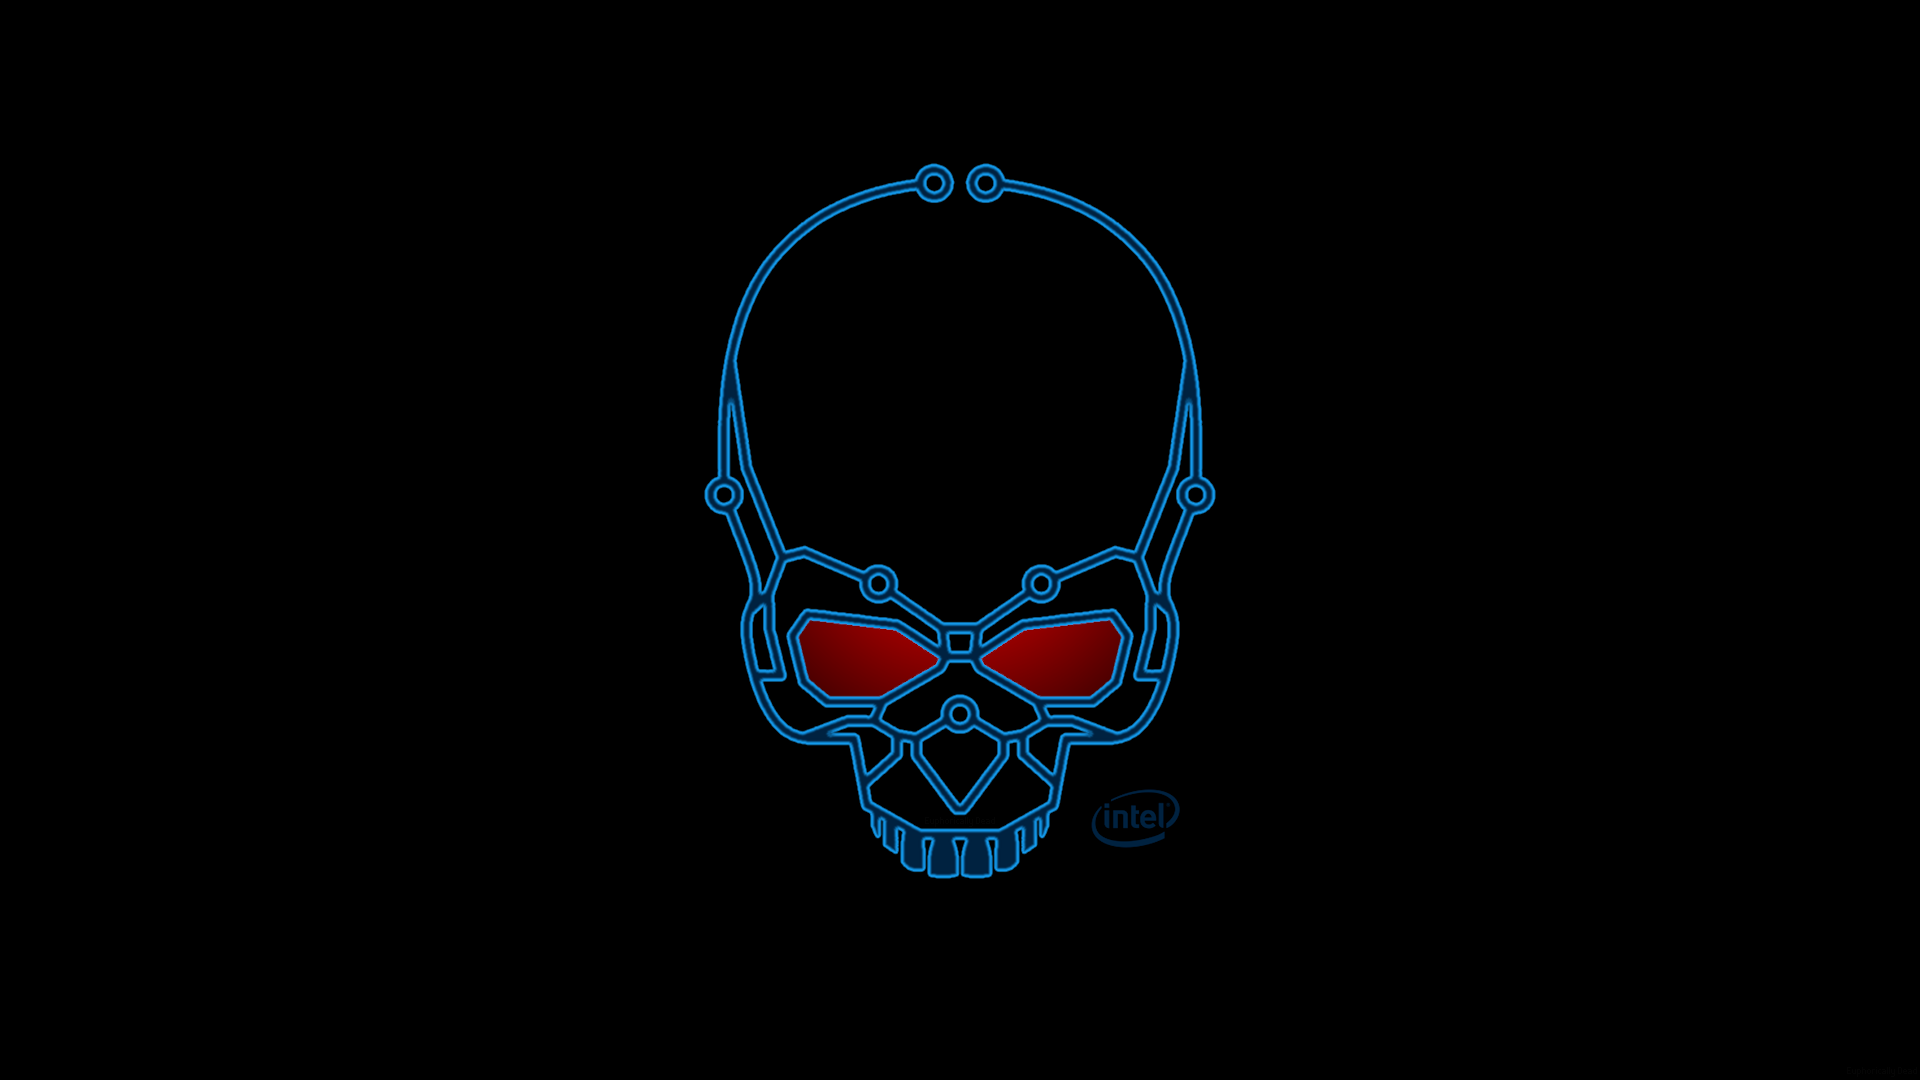 2011 2015 euphoricallydead intel skull logo fan art wallpaper intel 1920x1080